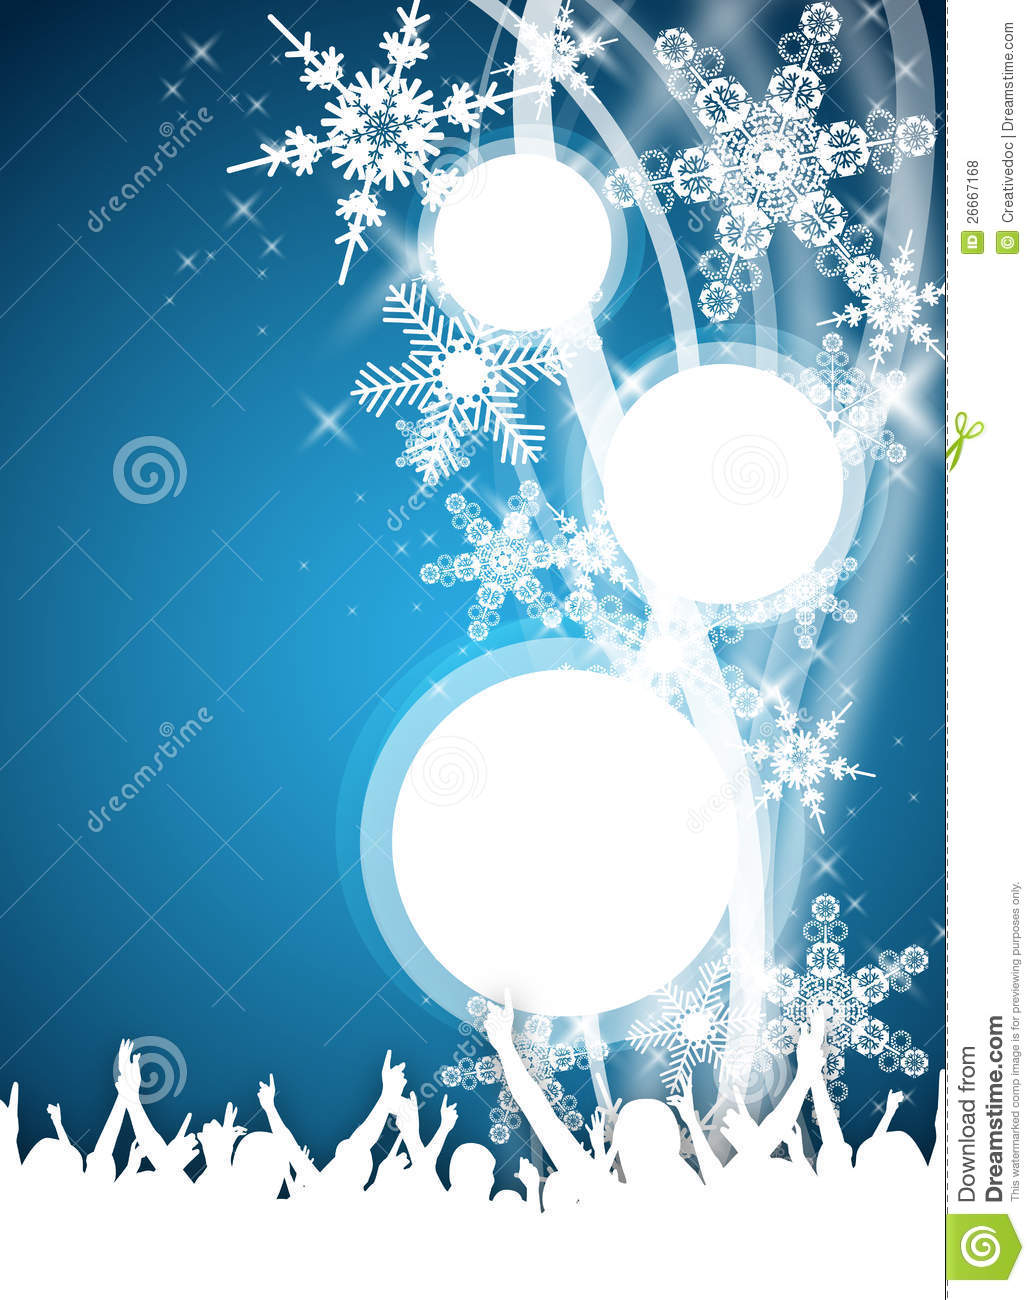 blue winter party flyer royalty stock photos image 26667168 blue winter party flyer